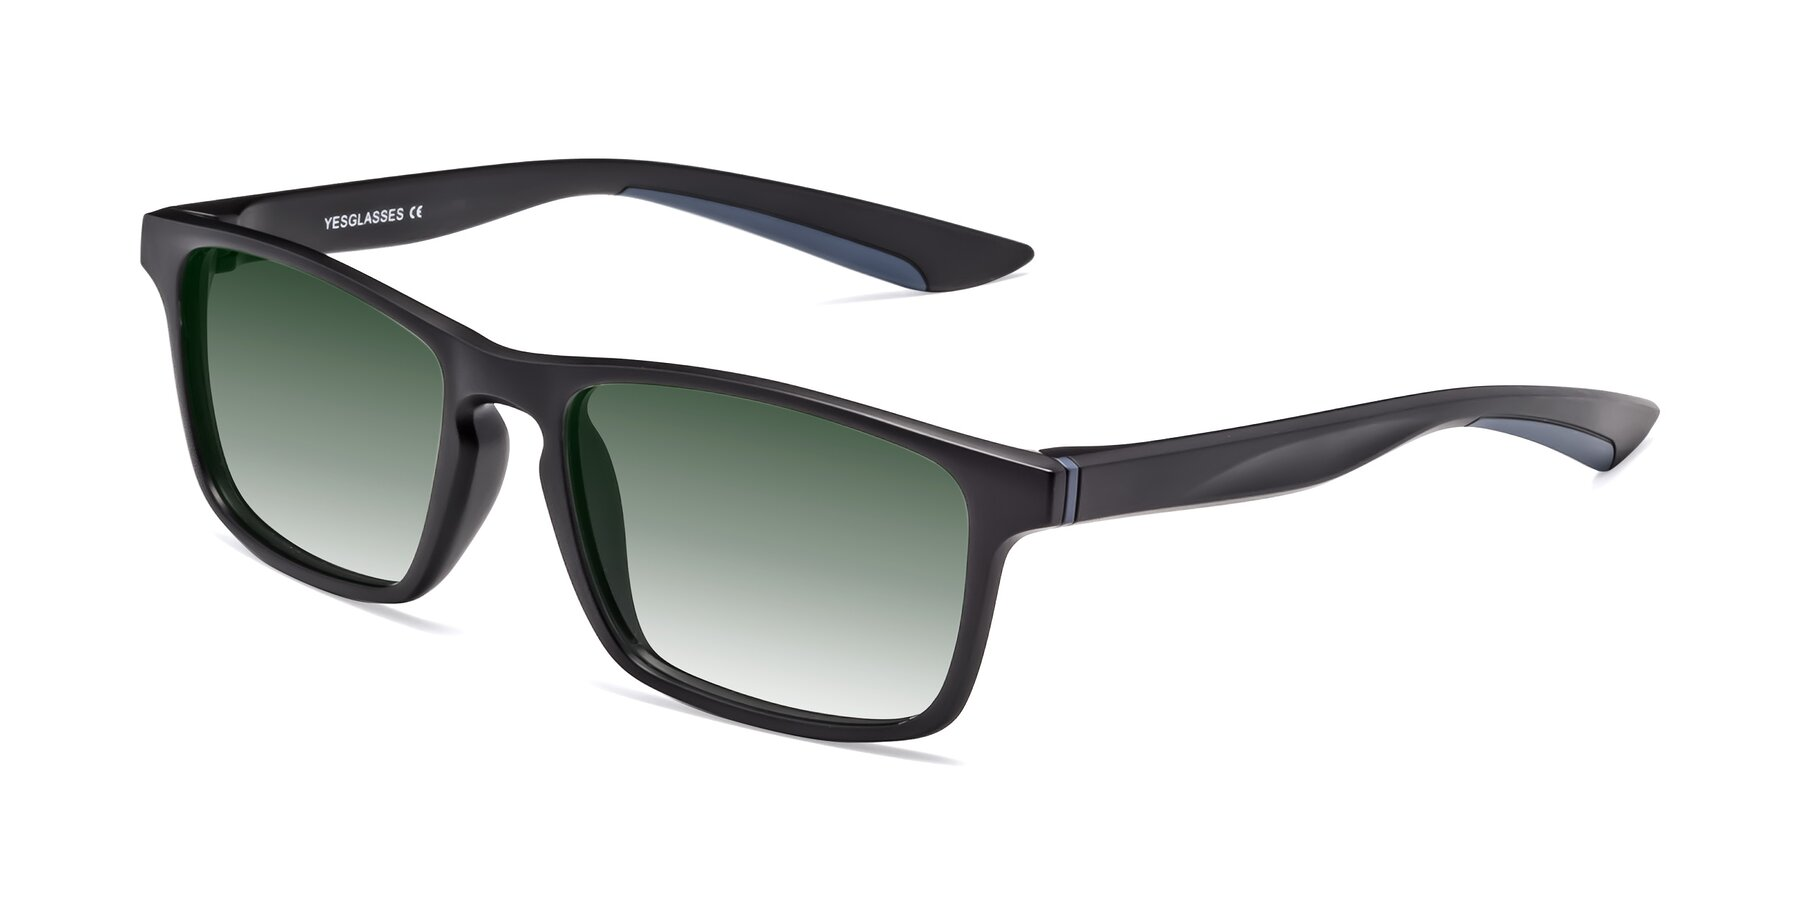 Angle of Passion in Matte Black-Blue with Green Gradient Lenses